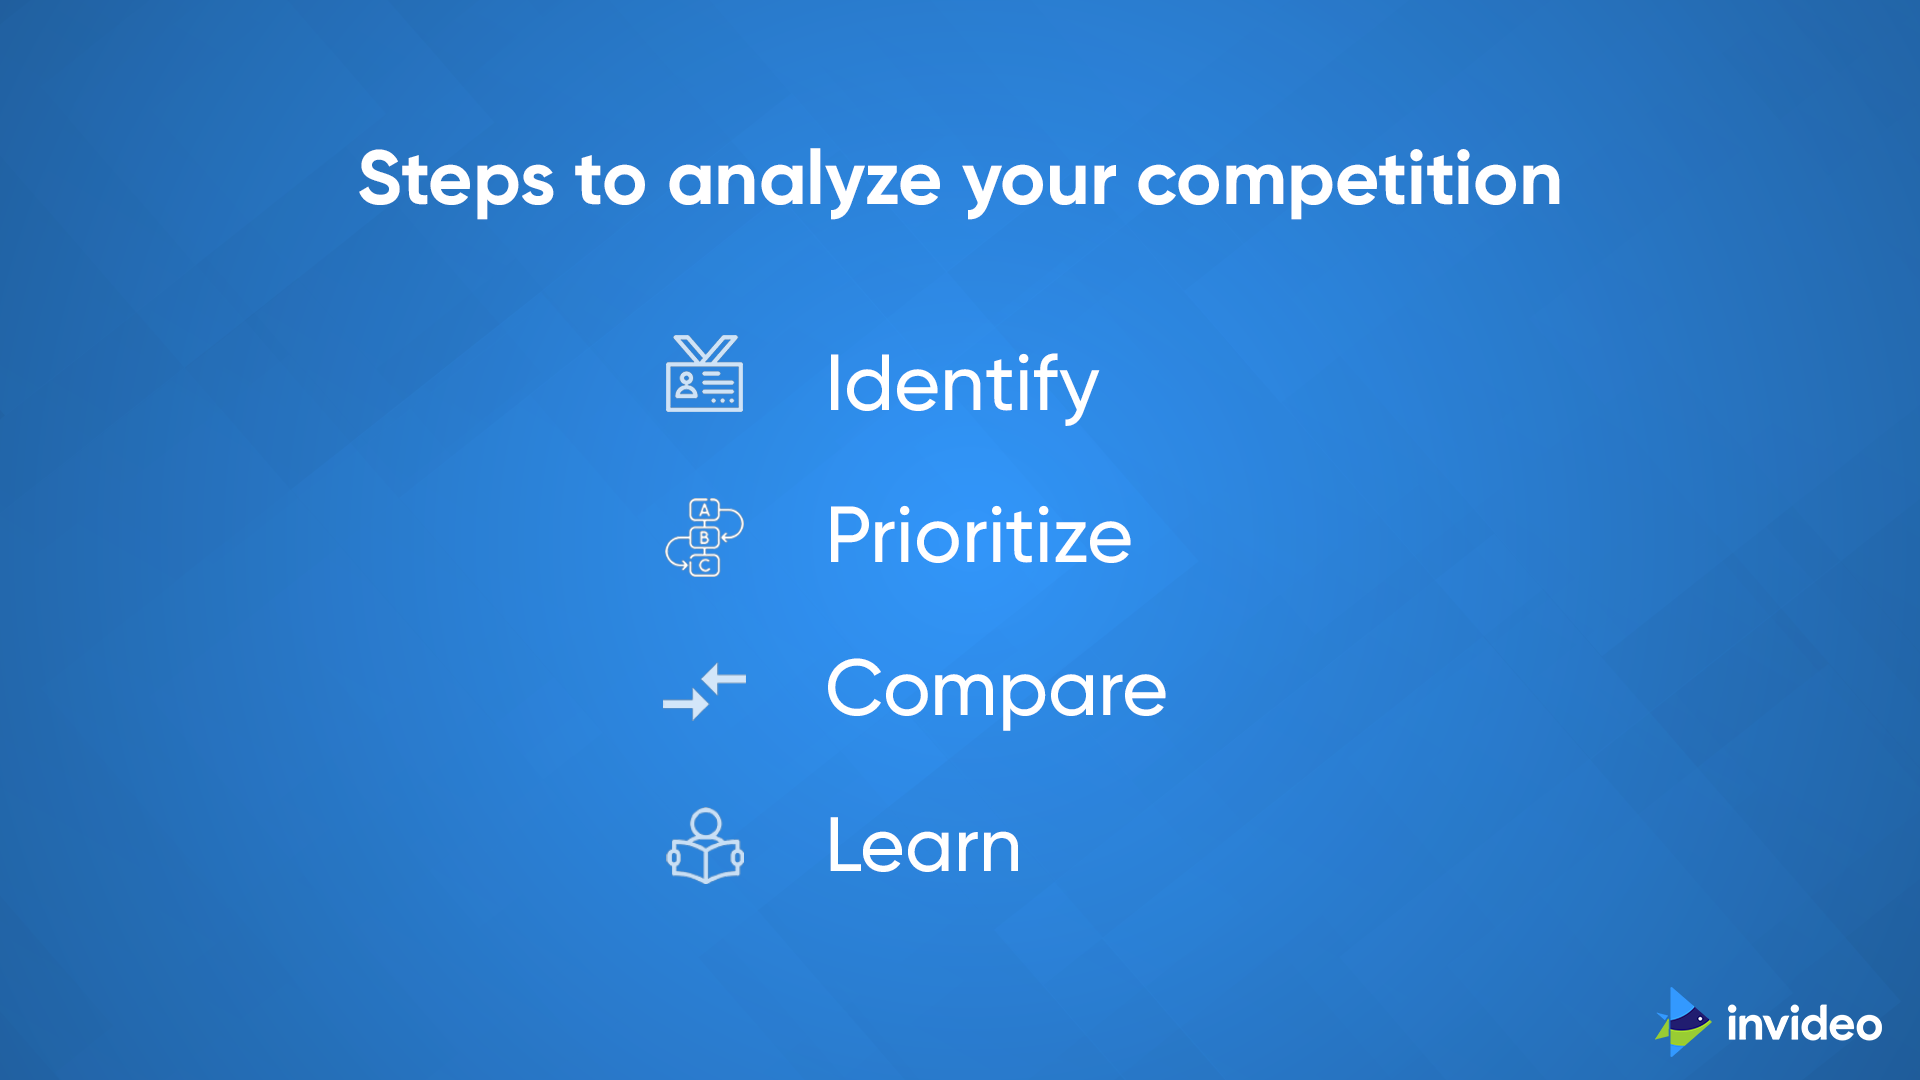 Steps to analyze Your Competition